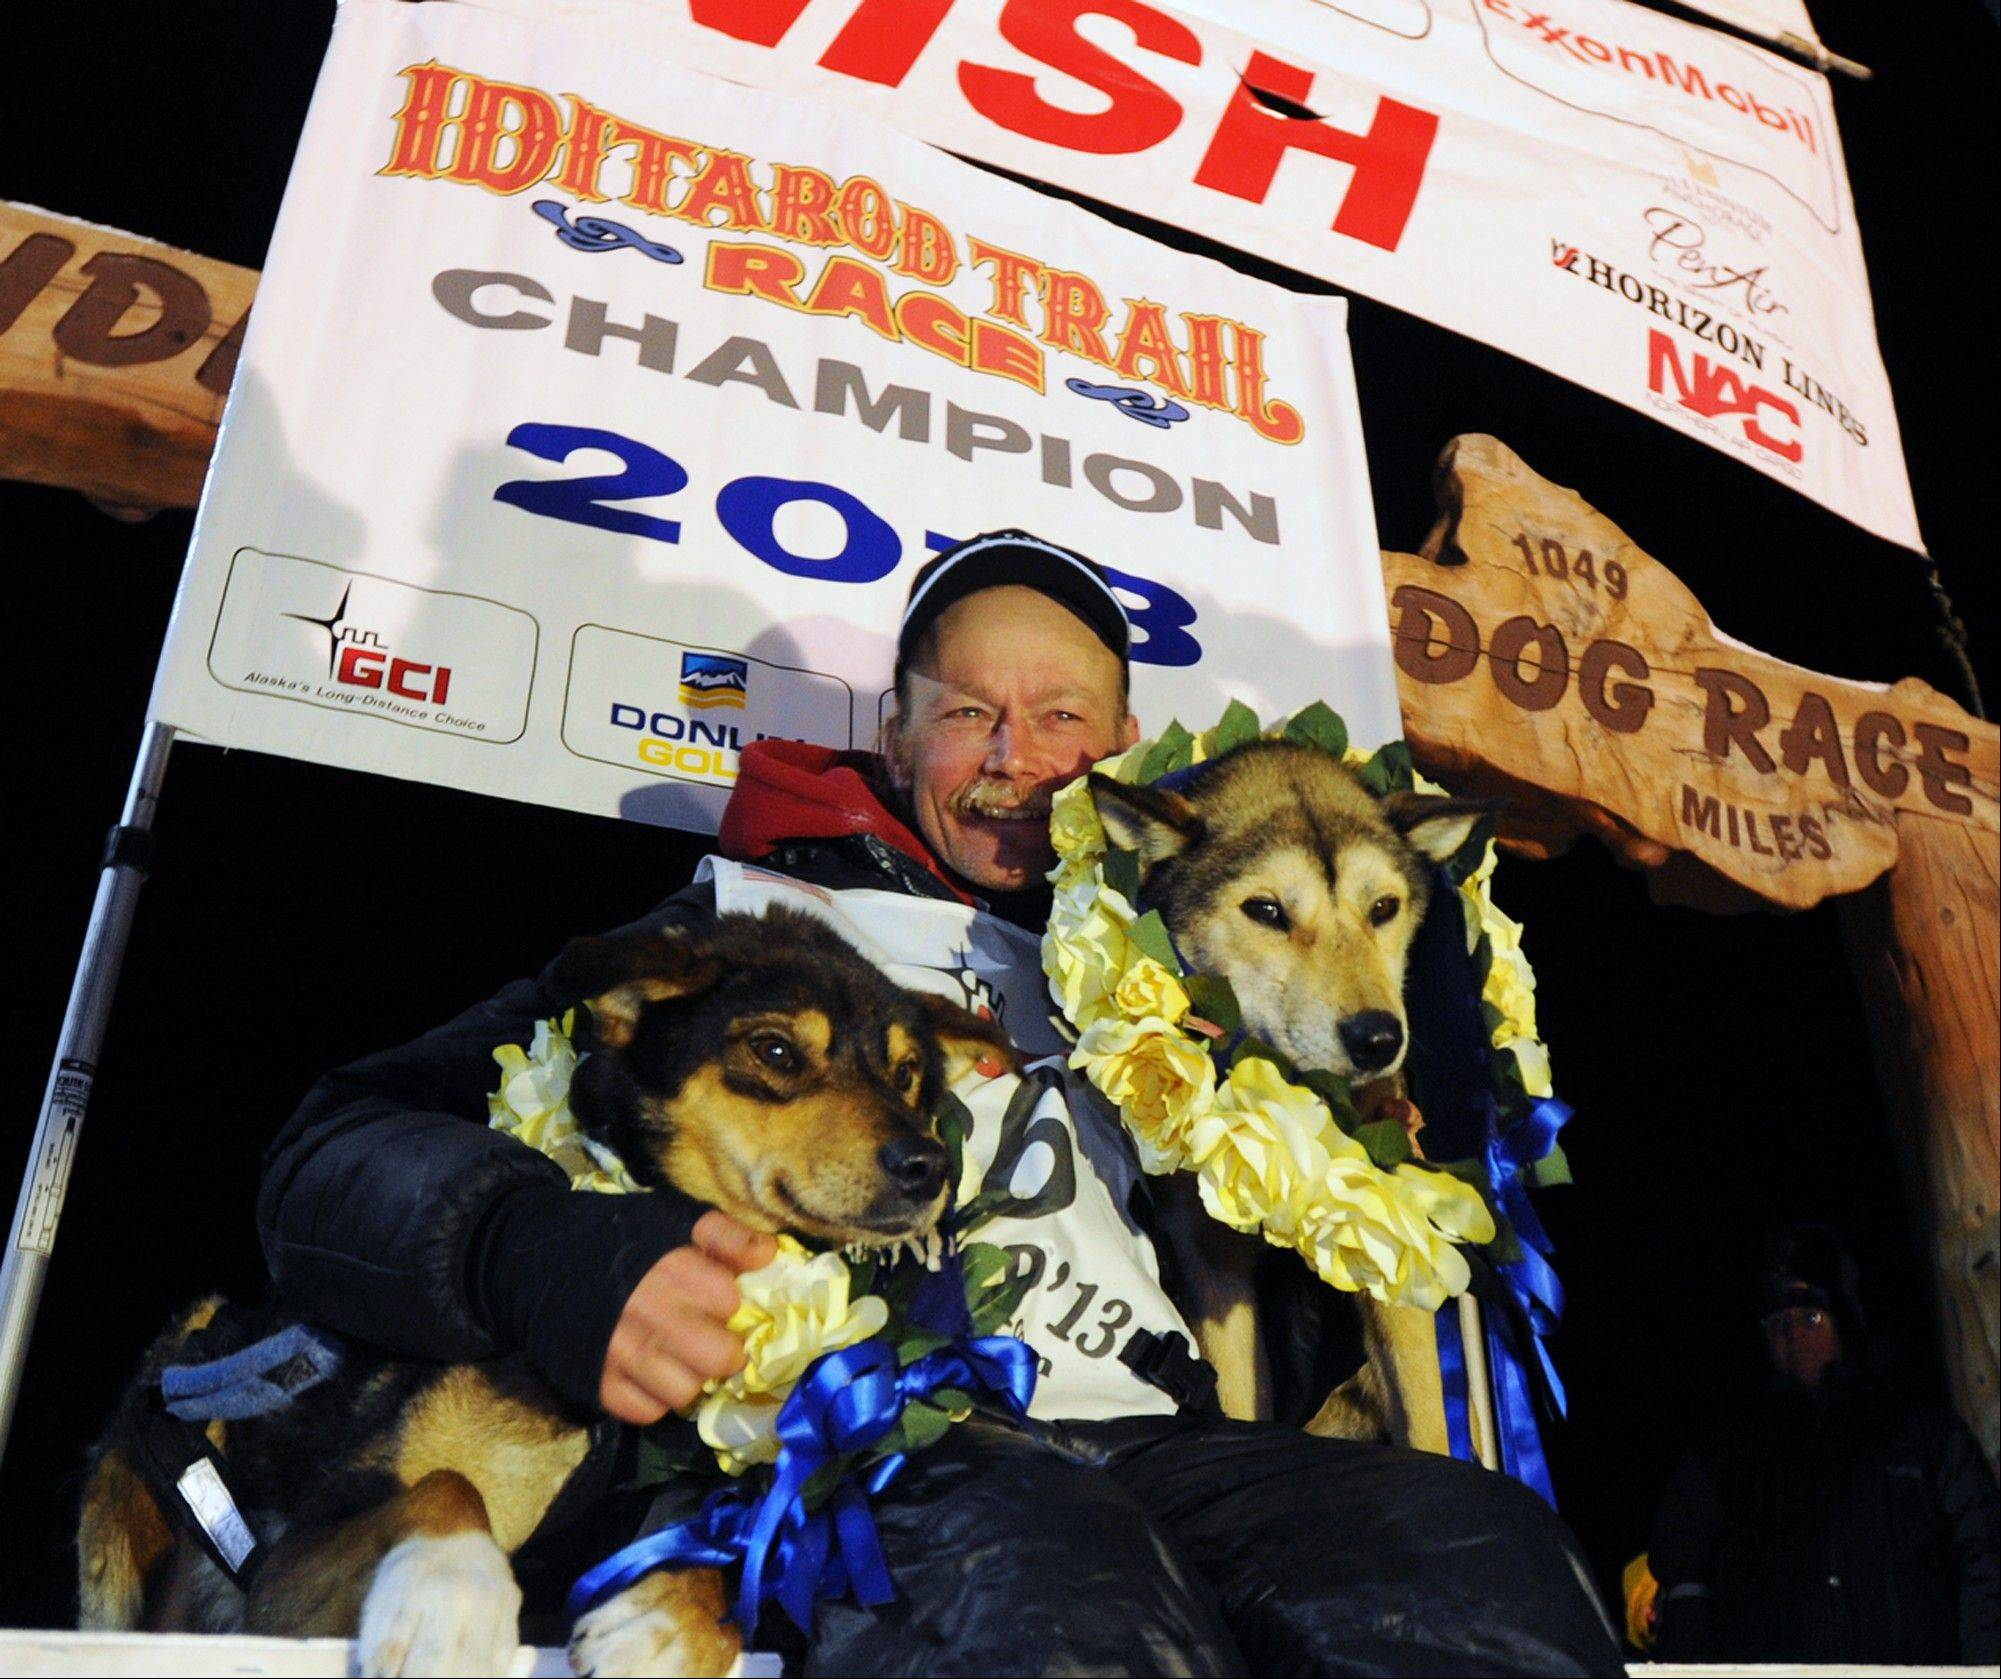 Mitch Seavey became the oldest winner and a two-time Iditarod champion when he drove his dog team under the burled arch in Nome on Tuesday evening, March 12, 2013. He sits with his two lead dogs, Tanner, left and Taurus, right.